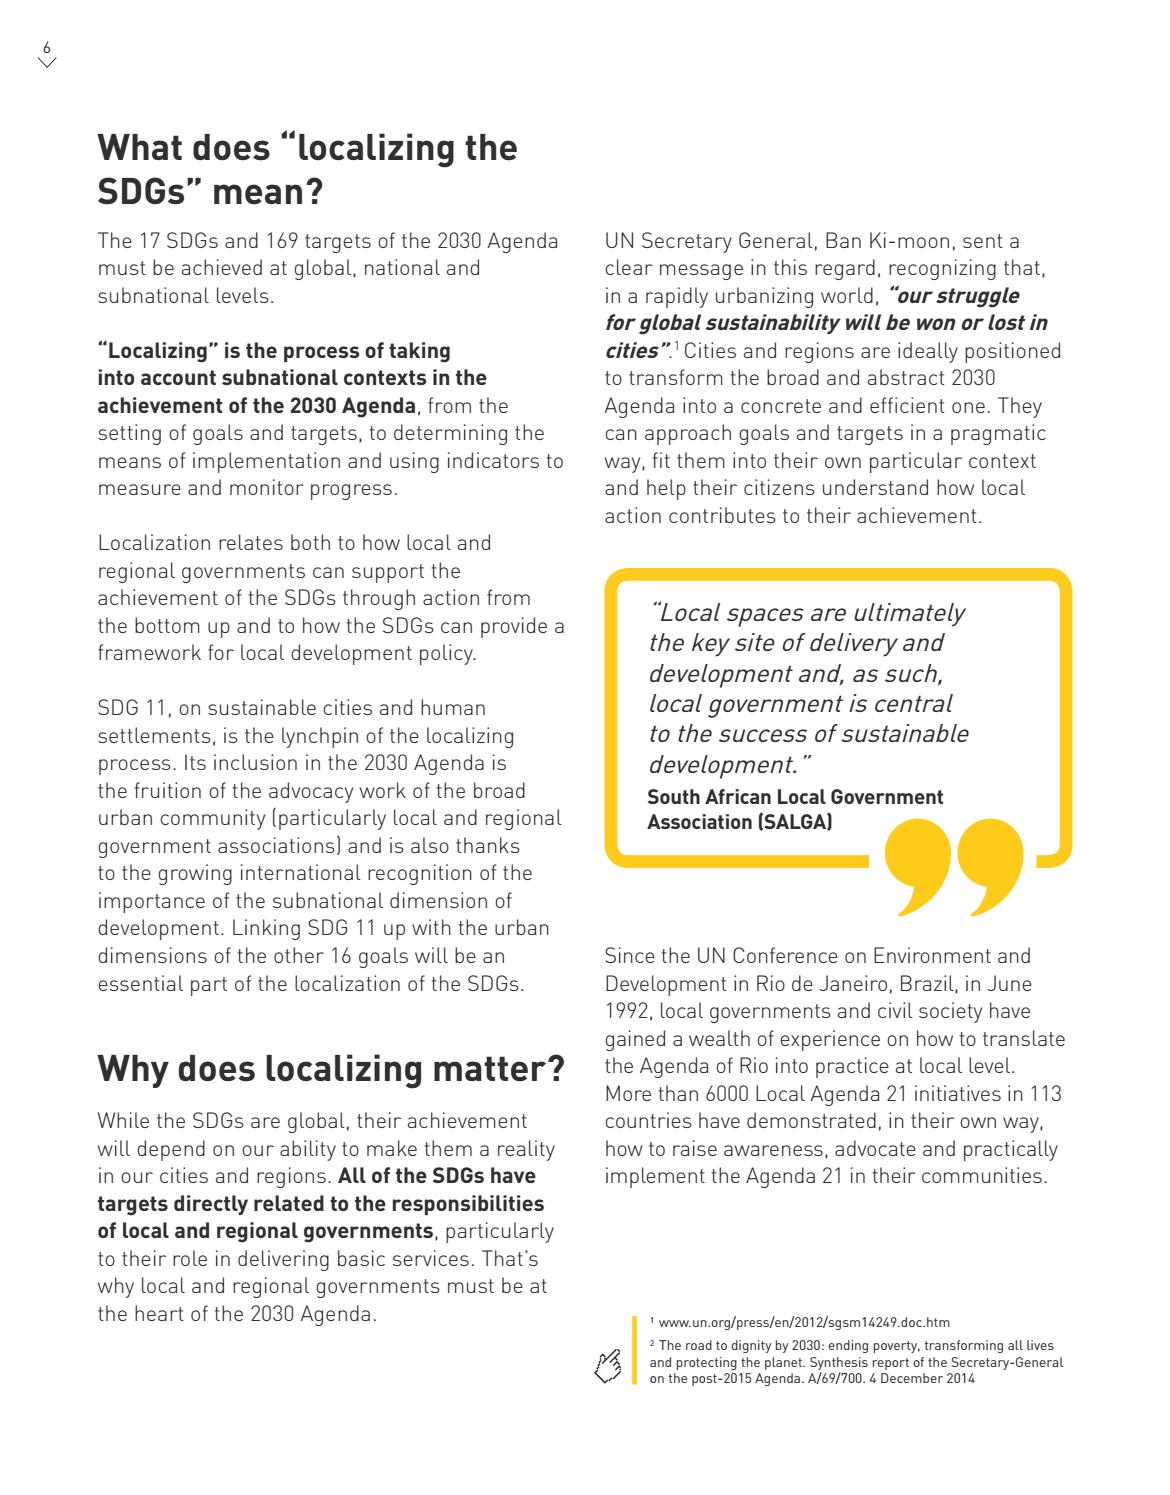 Roadmap For Localizing The SDGs Implementation And Monitoring At Subnational Level